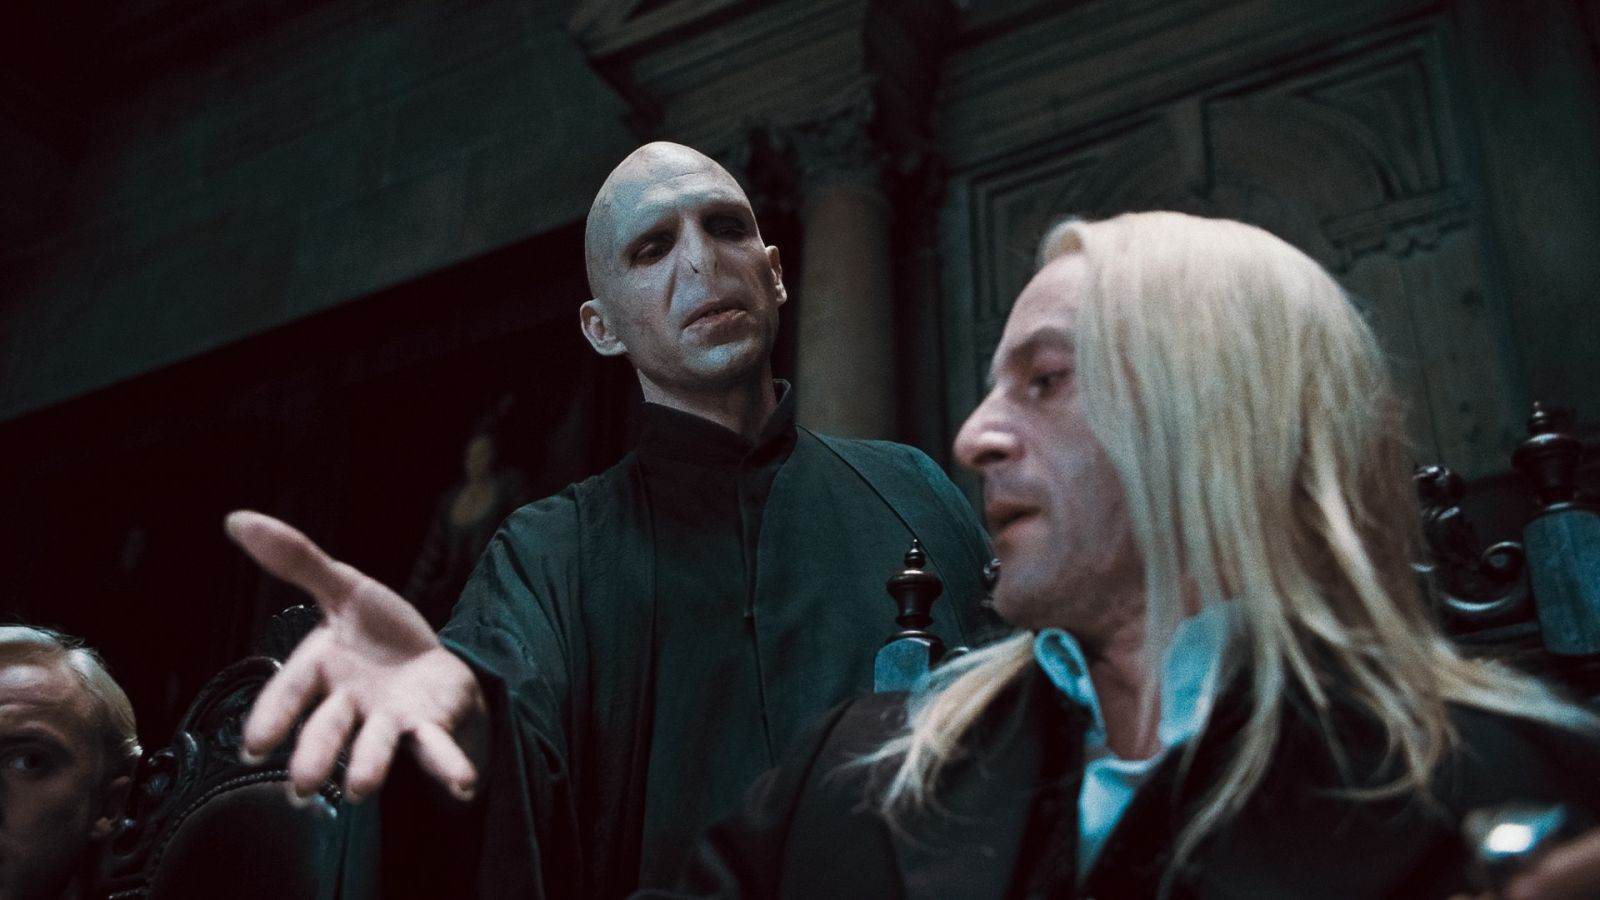 The face of evil lord voldemort on deathly hallows part 1 for Harry potter and the deathly hallows wand